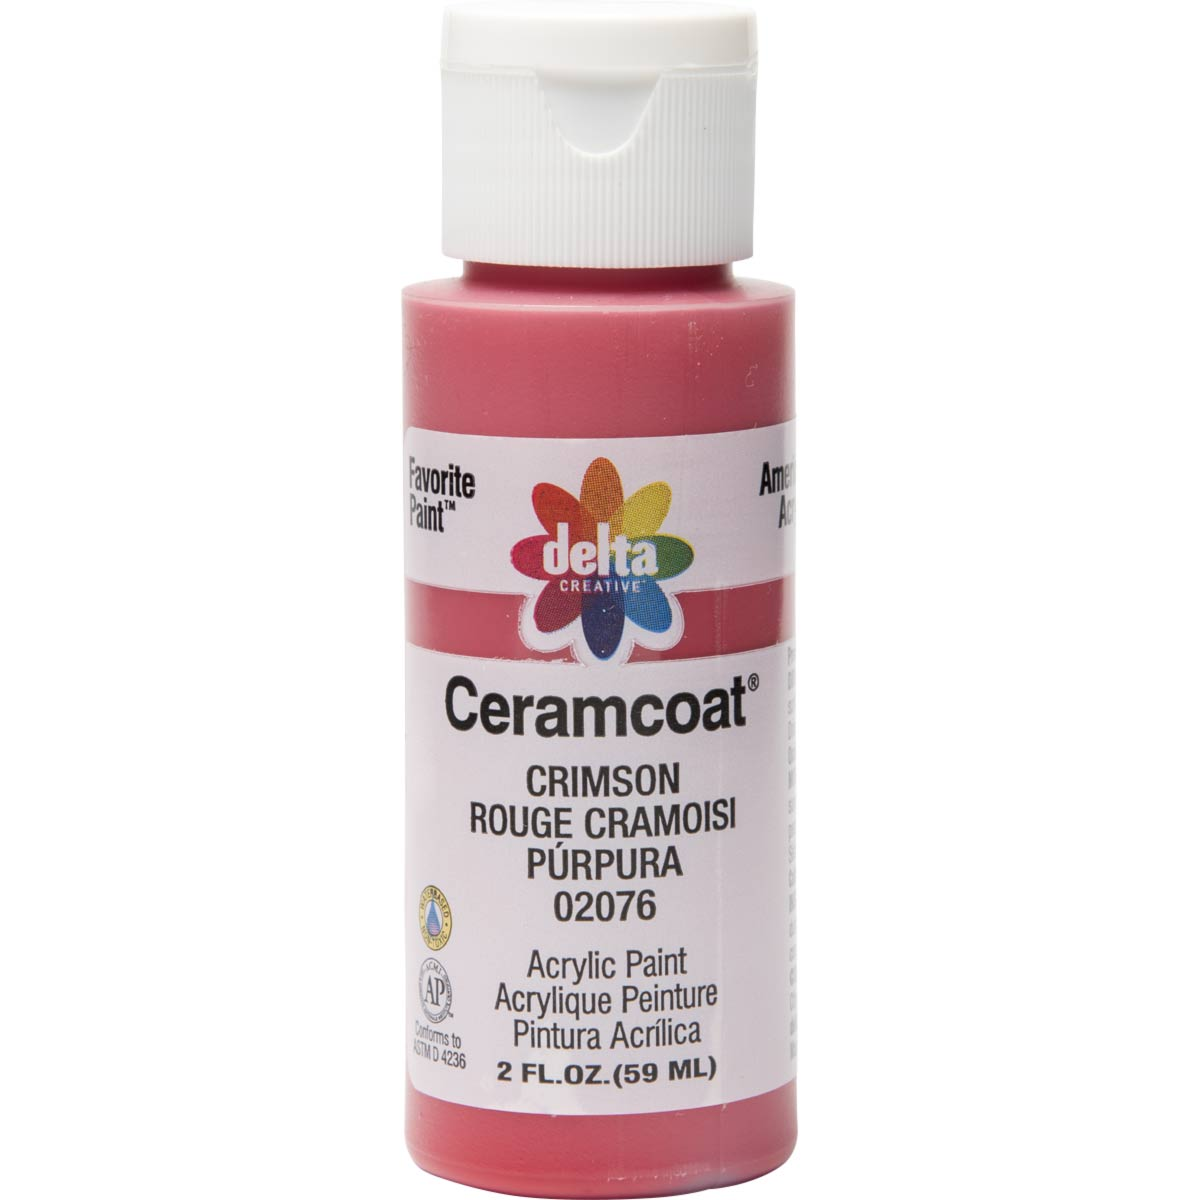 Delta Ceramcoat ® Acrylic Paint - Crimson, 2 oz.